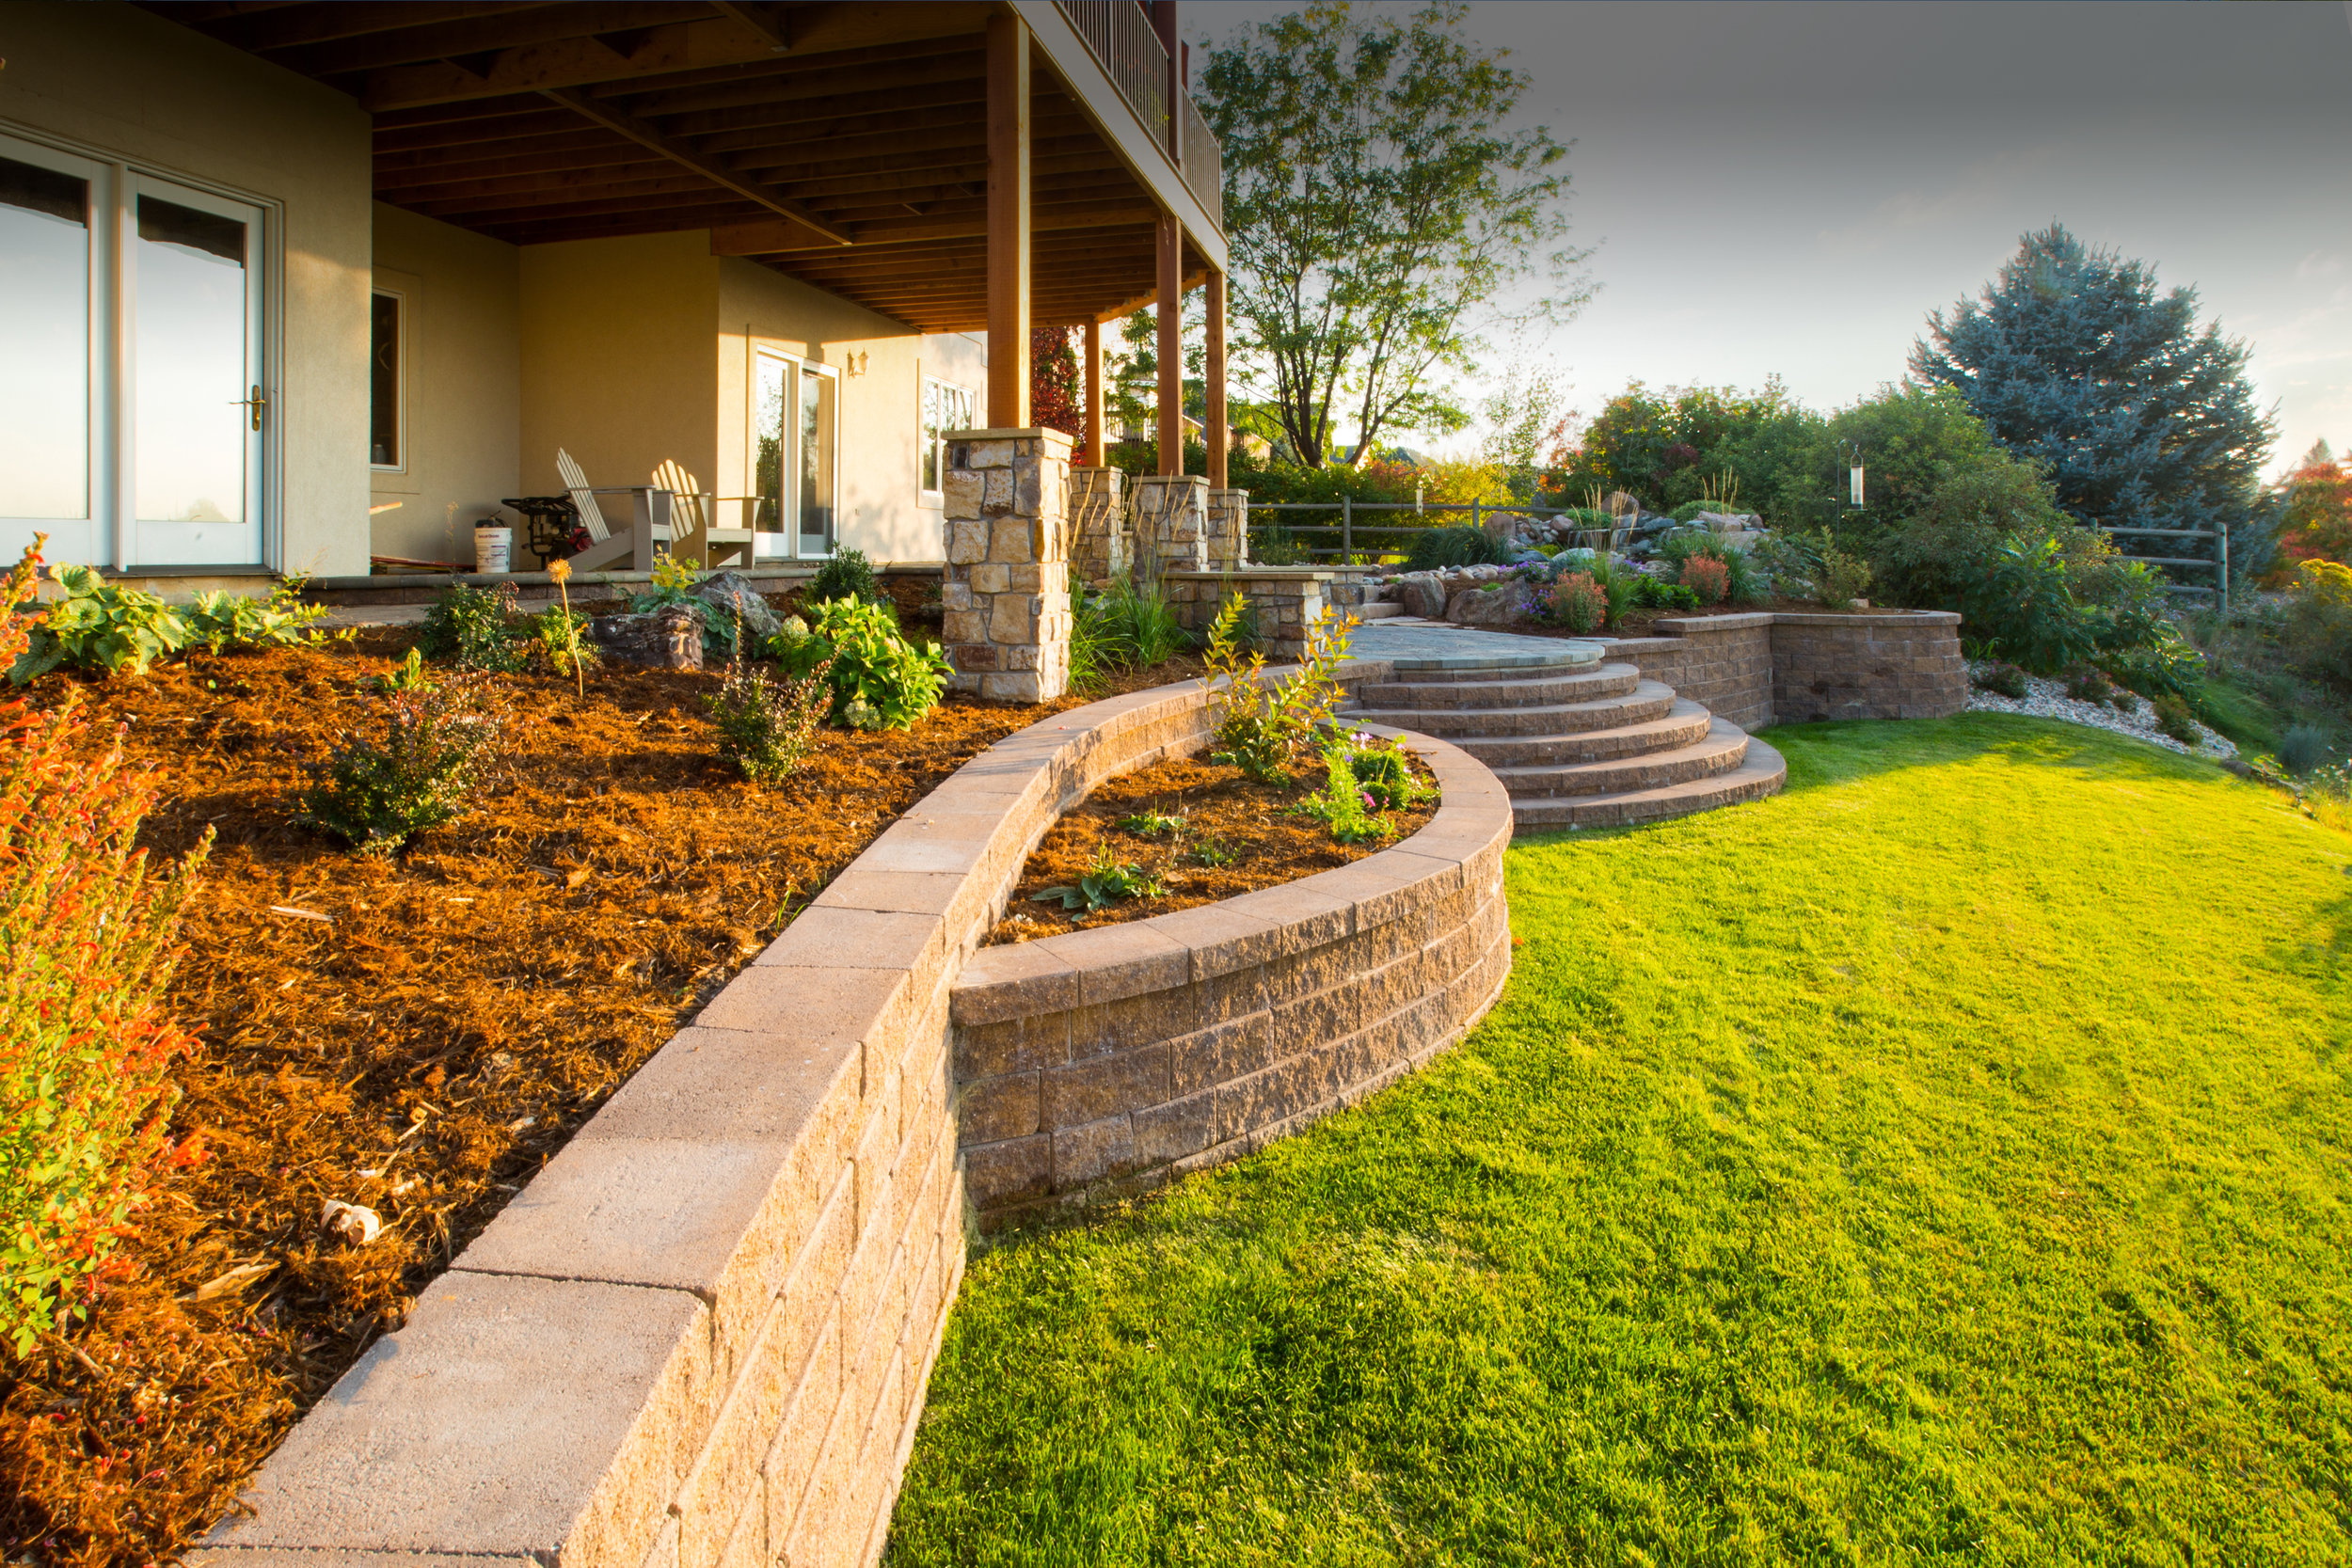 Zak George Landscaping - Colorado - Residential Landscape